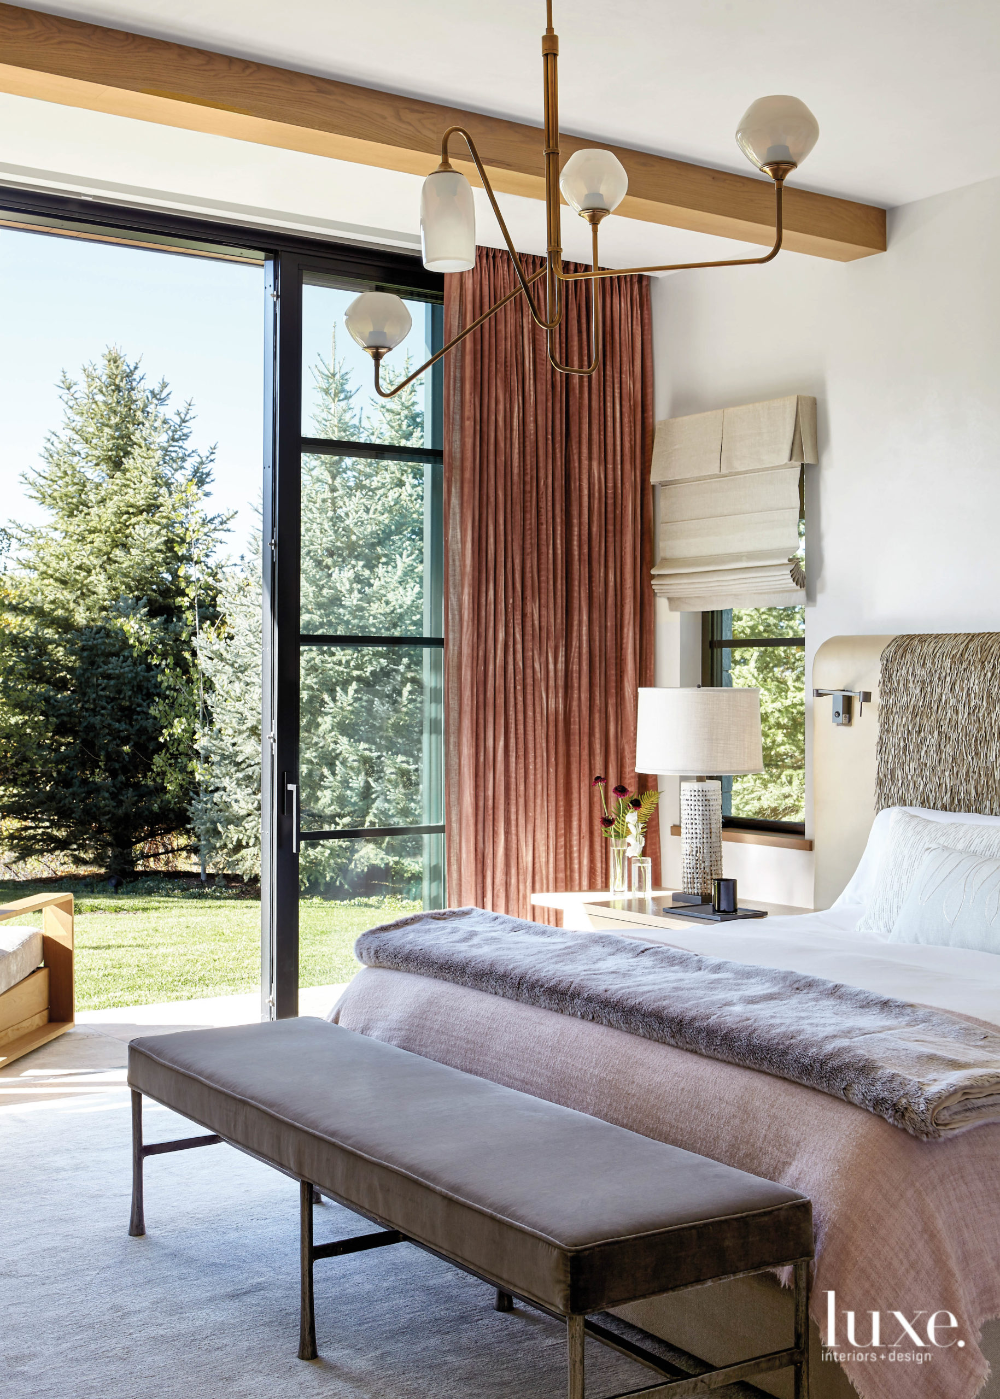 Perfect Harmony An Aspen Home Mixes Modern Minimalism With Maximal Warmth Luxe Interiors Design In 2020 Home Bedroom Design Chic Interior Design Interior Work